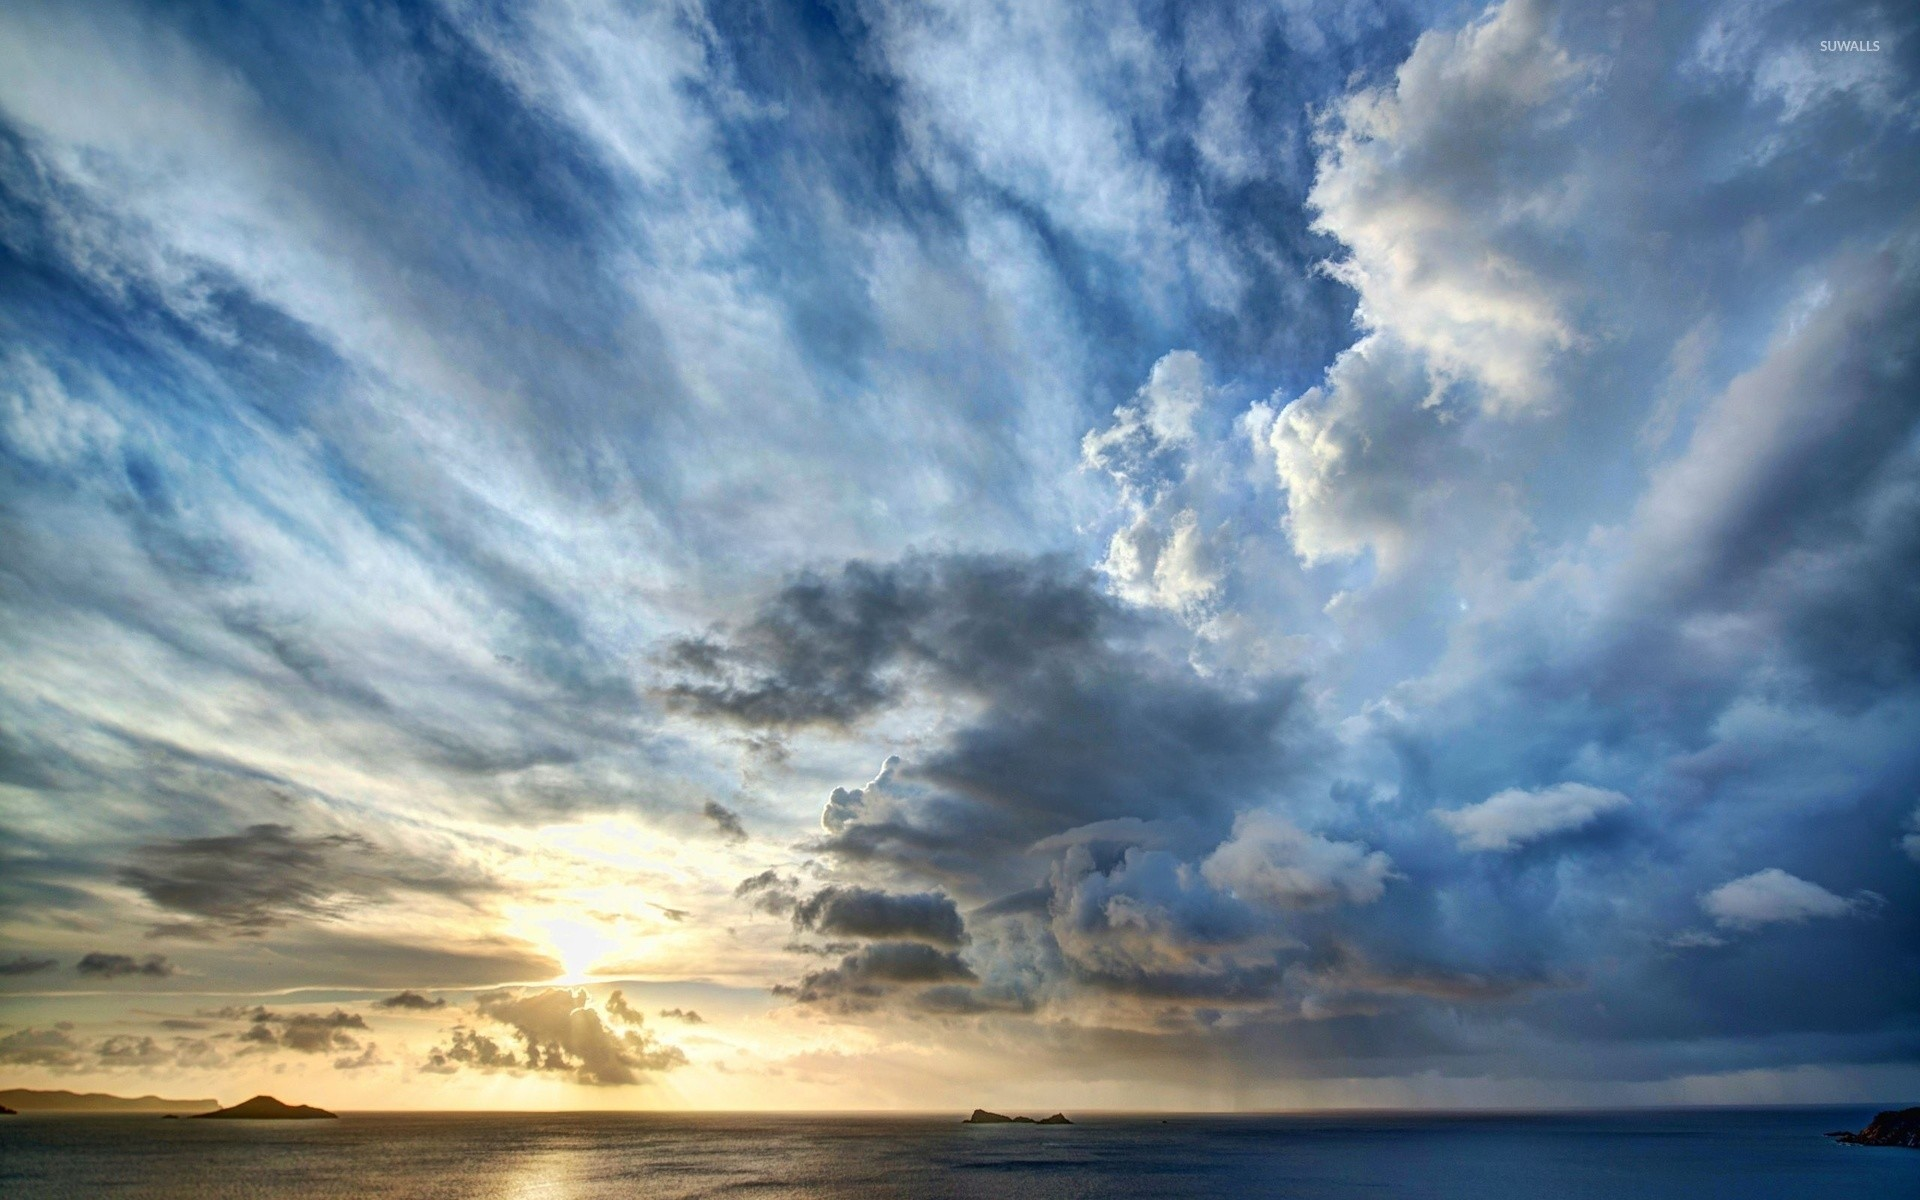 Stormy clouds above the ocean at sunset wallpaper